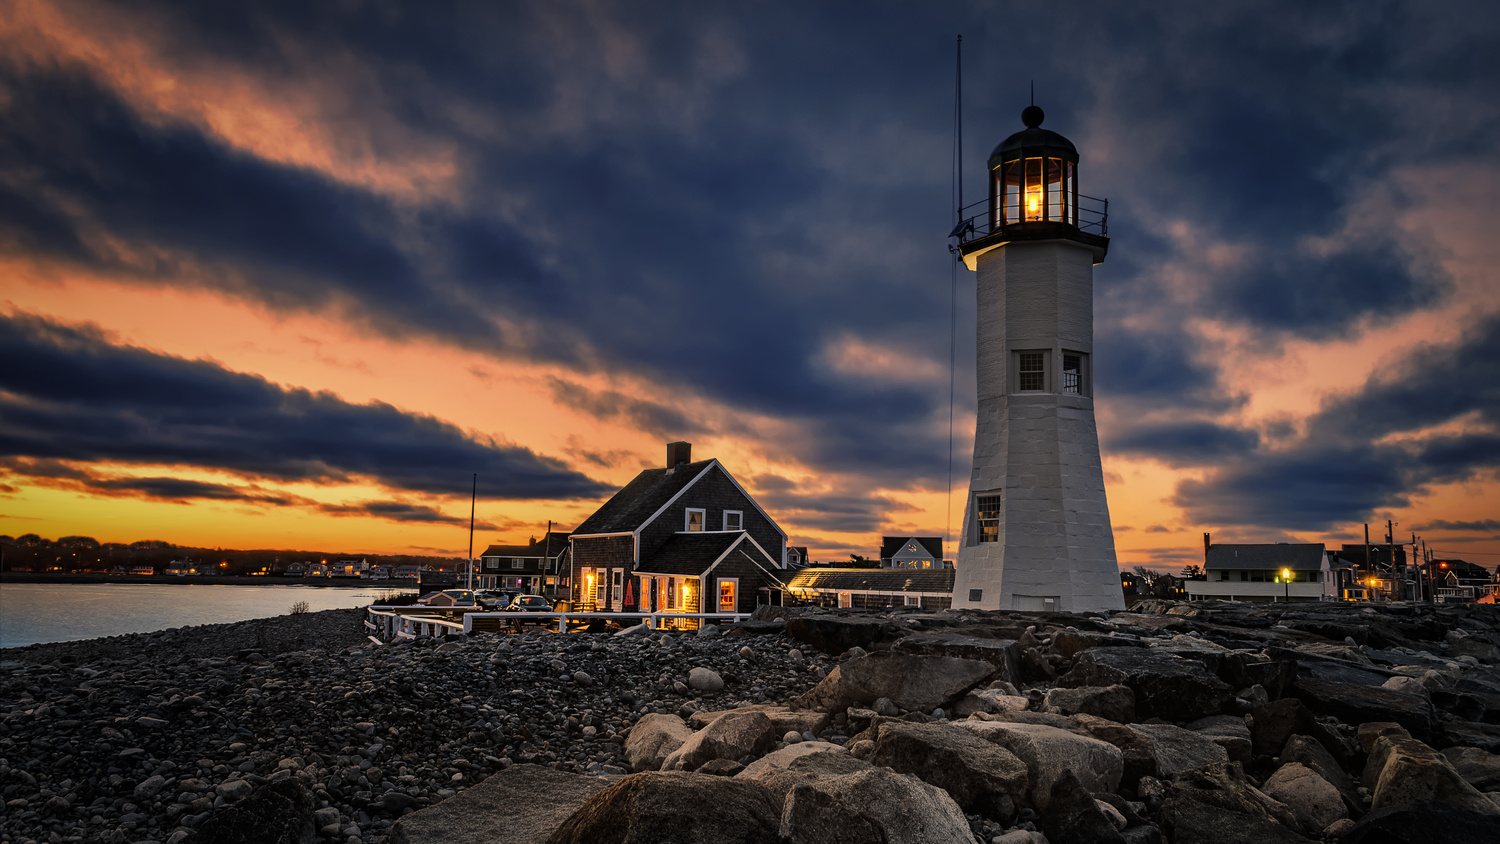 Boston / Cape Cod - Scituate Lighthouse Sunset by Stas F